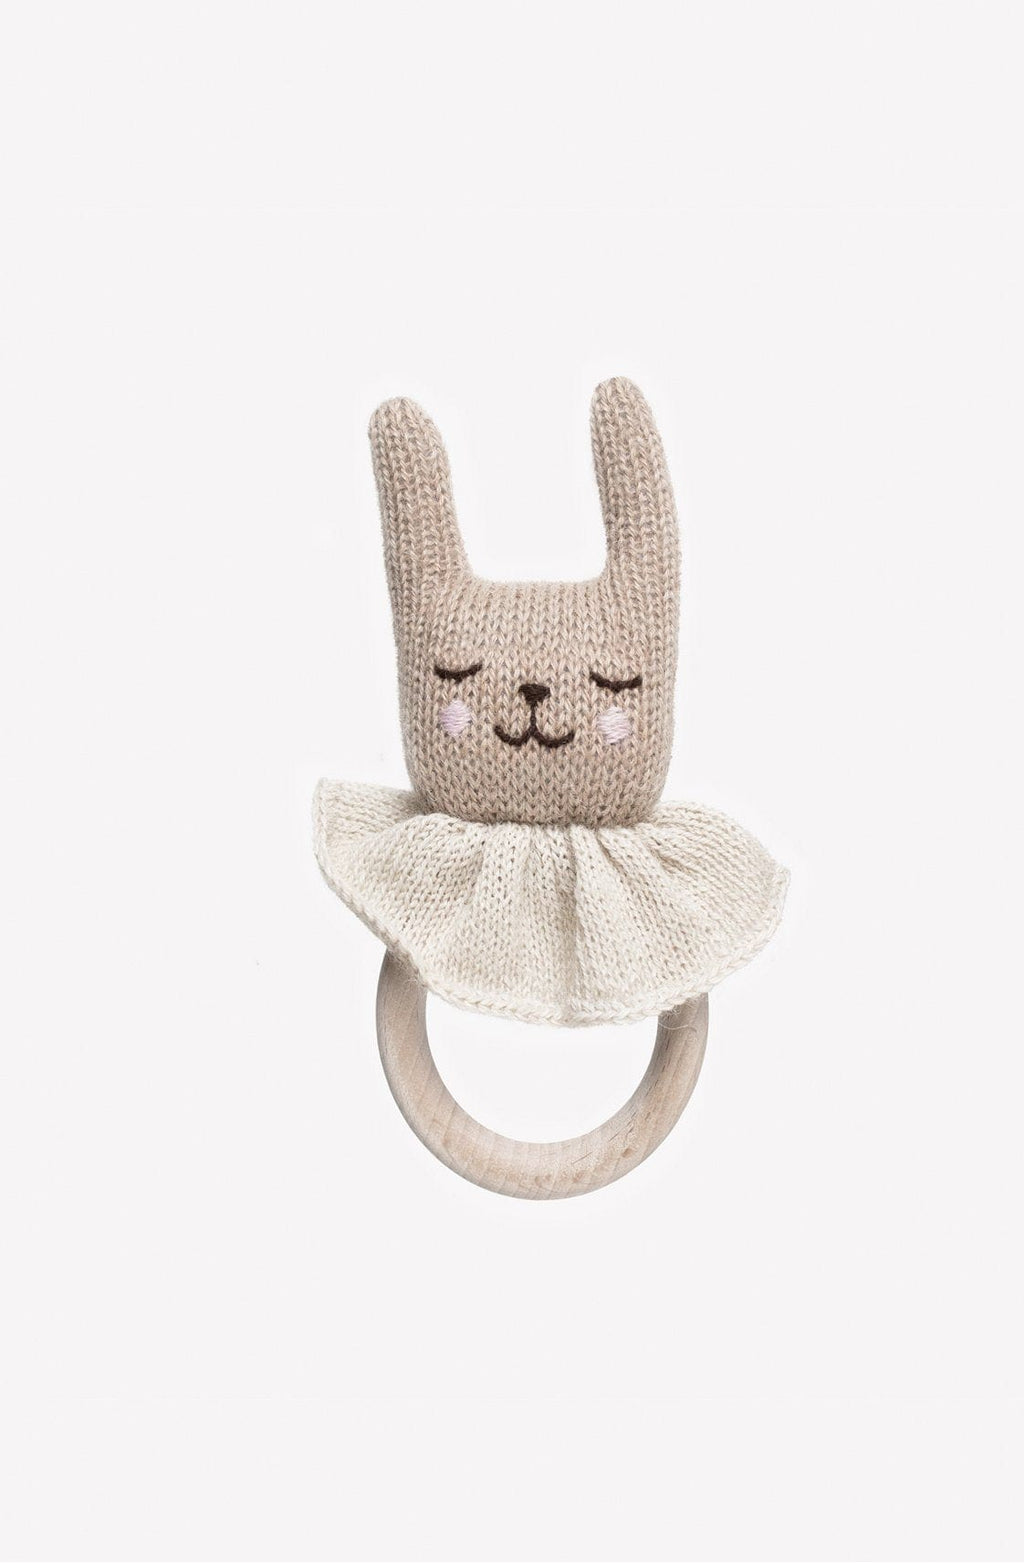 Main Sauvage Teething Ring, Rabbit (PRE-ORDER NOV) - Hello Little Birdie